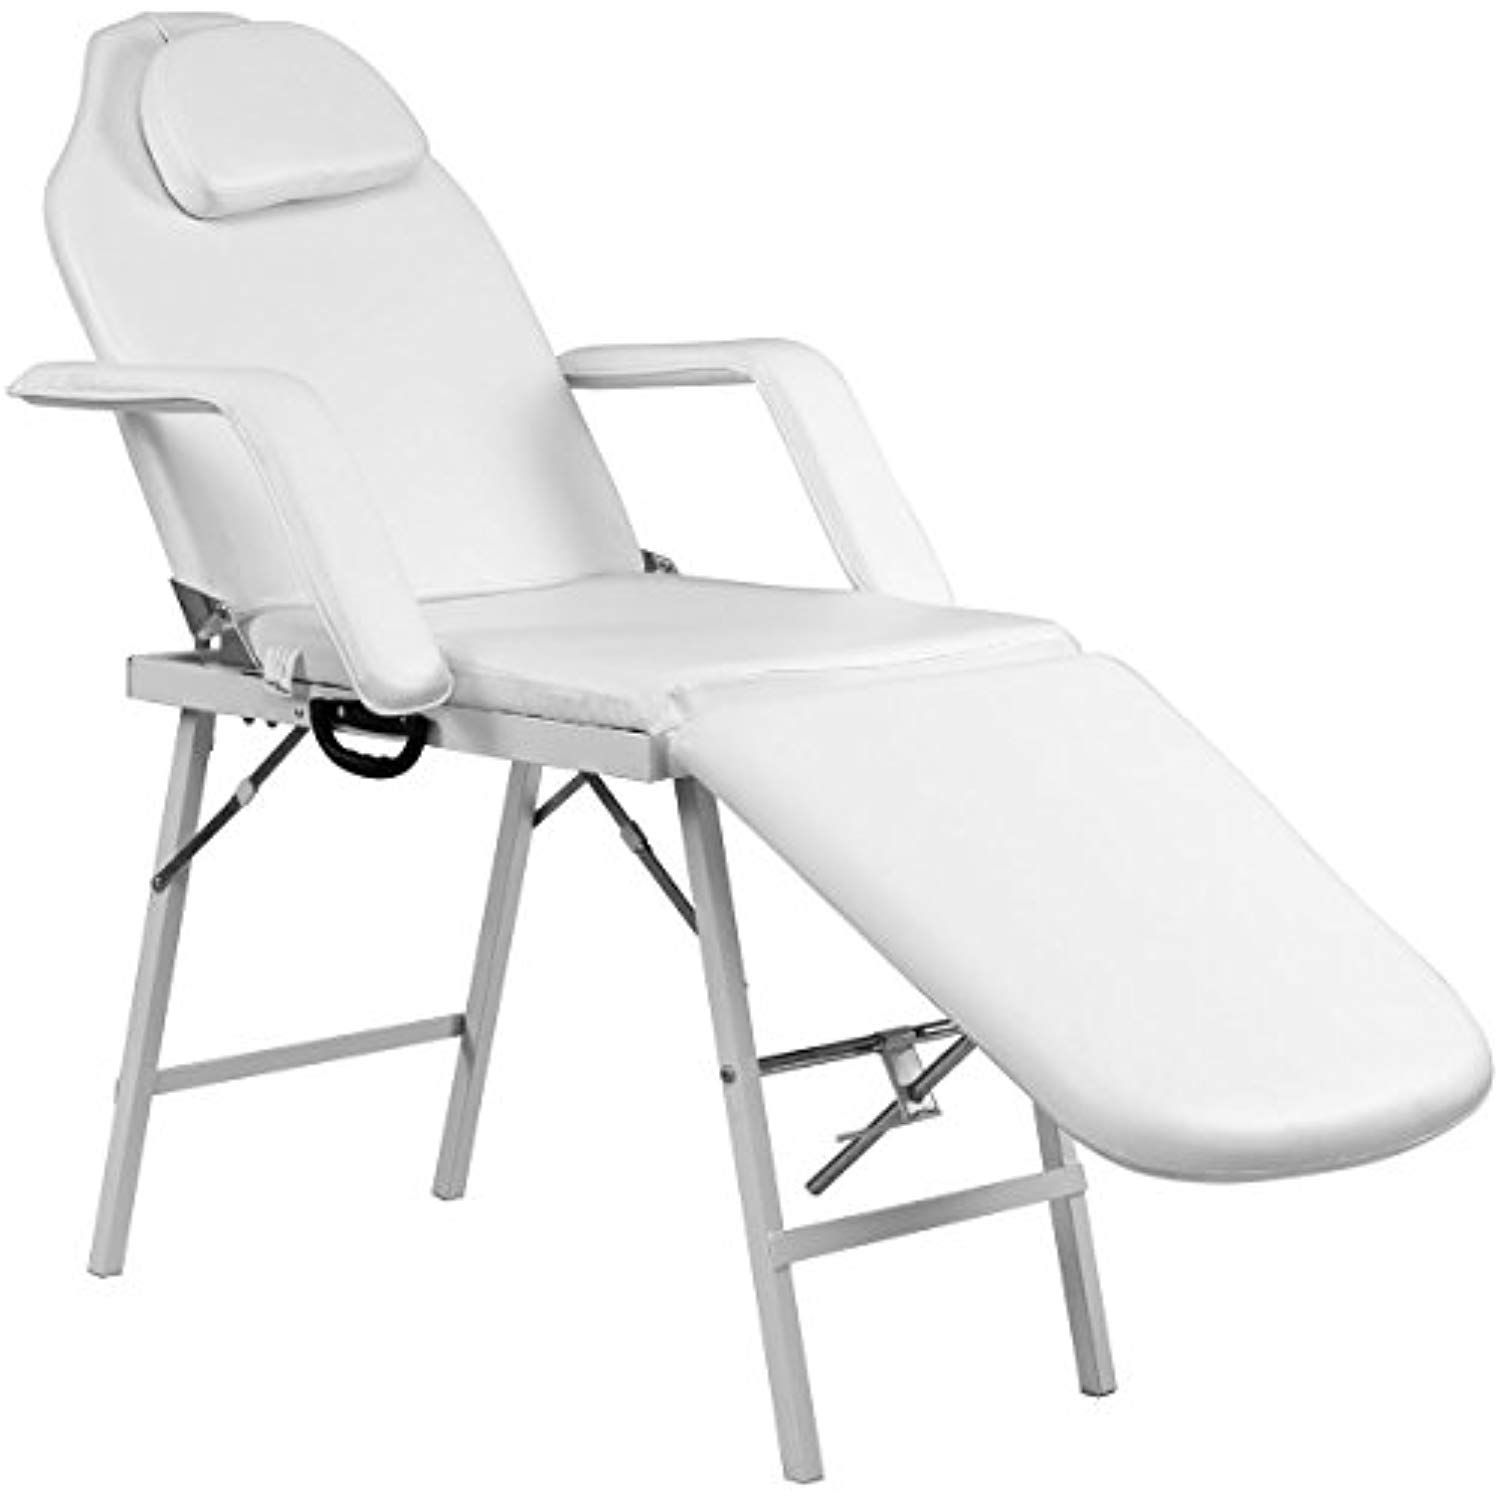 inkbed hydraulic tattoo chair review